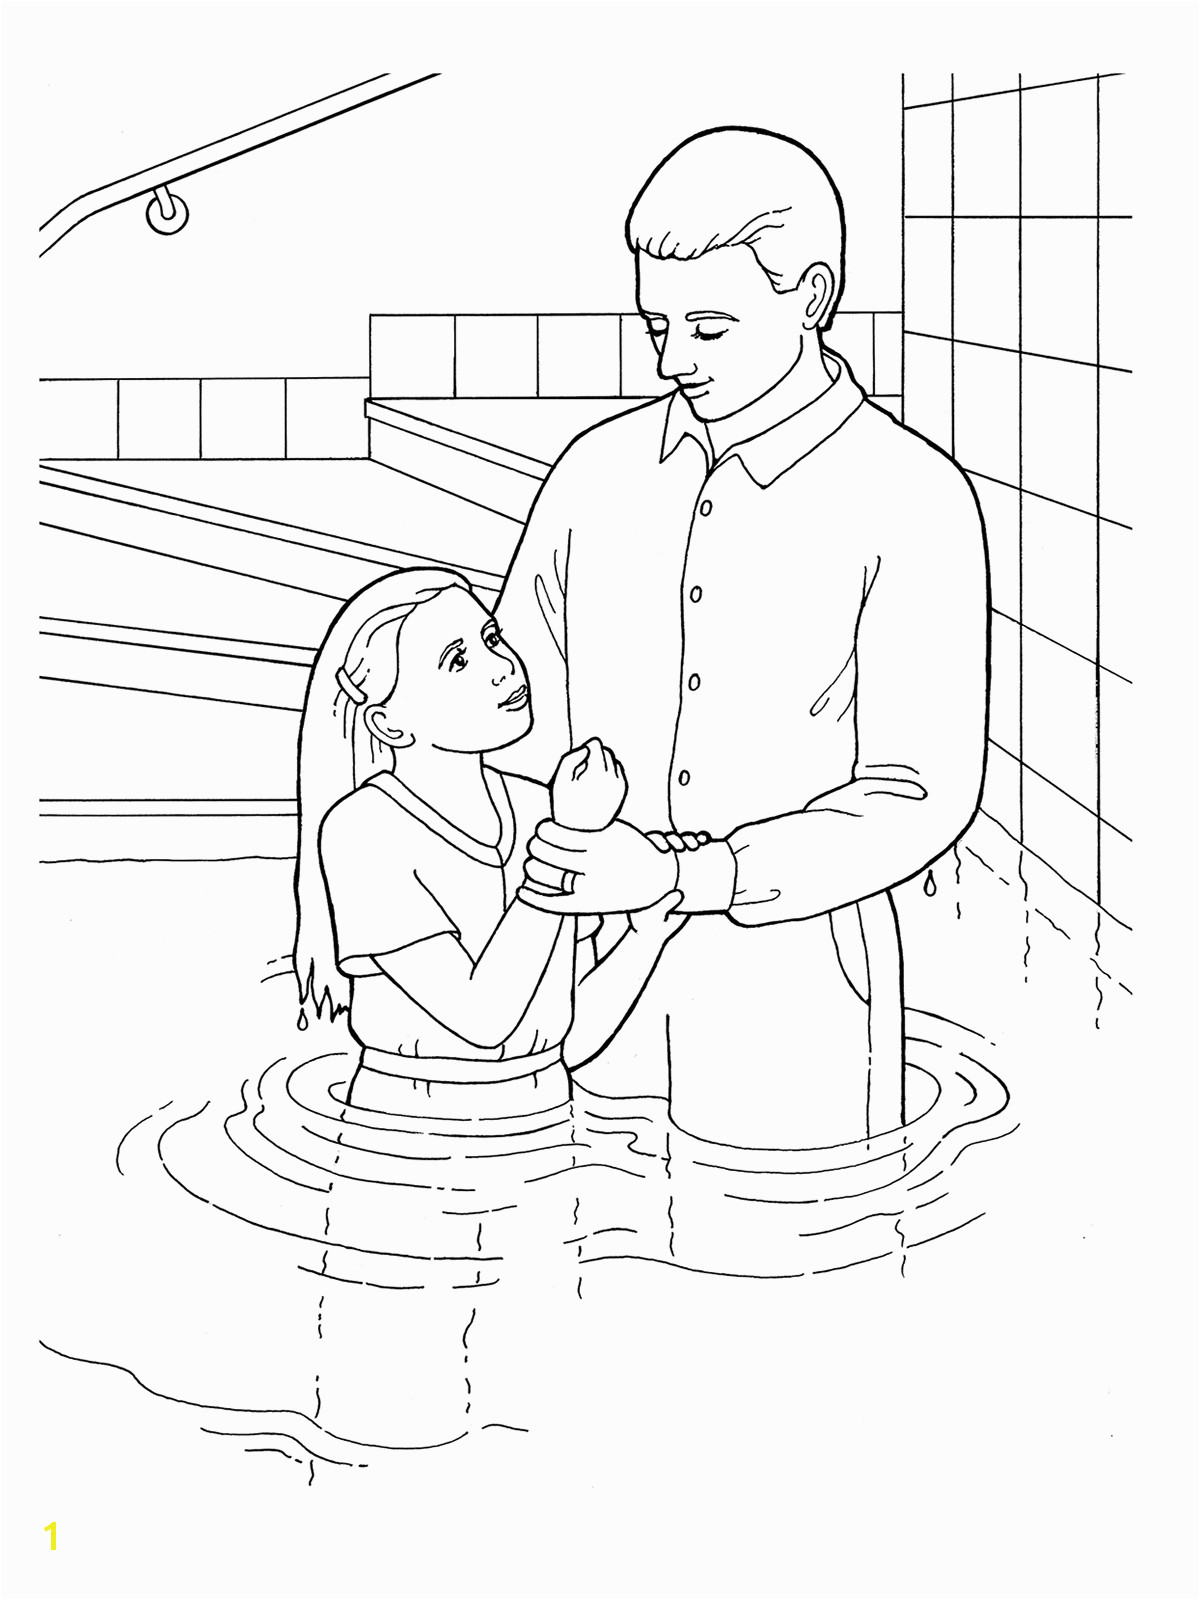 Best of baptism coloring sheet Collection 10m Confirmation and t if the holy ghost coloring